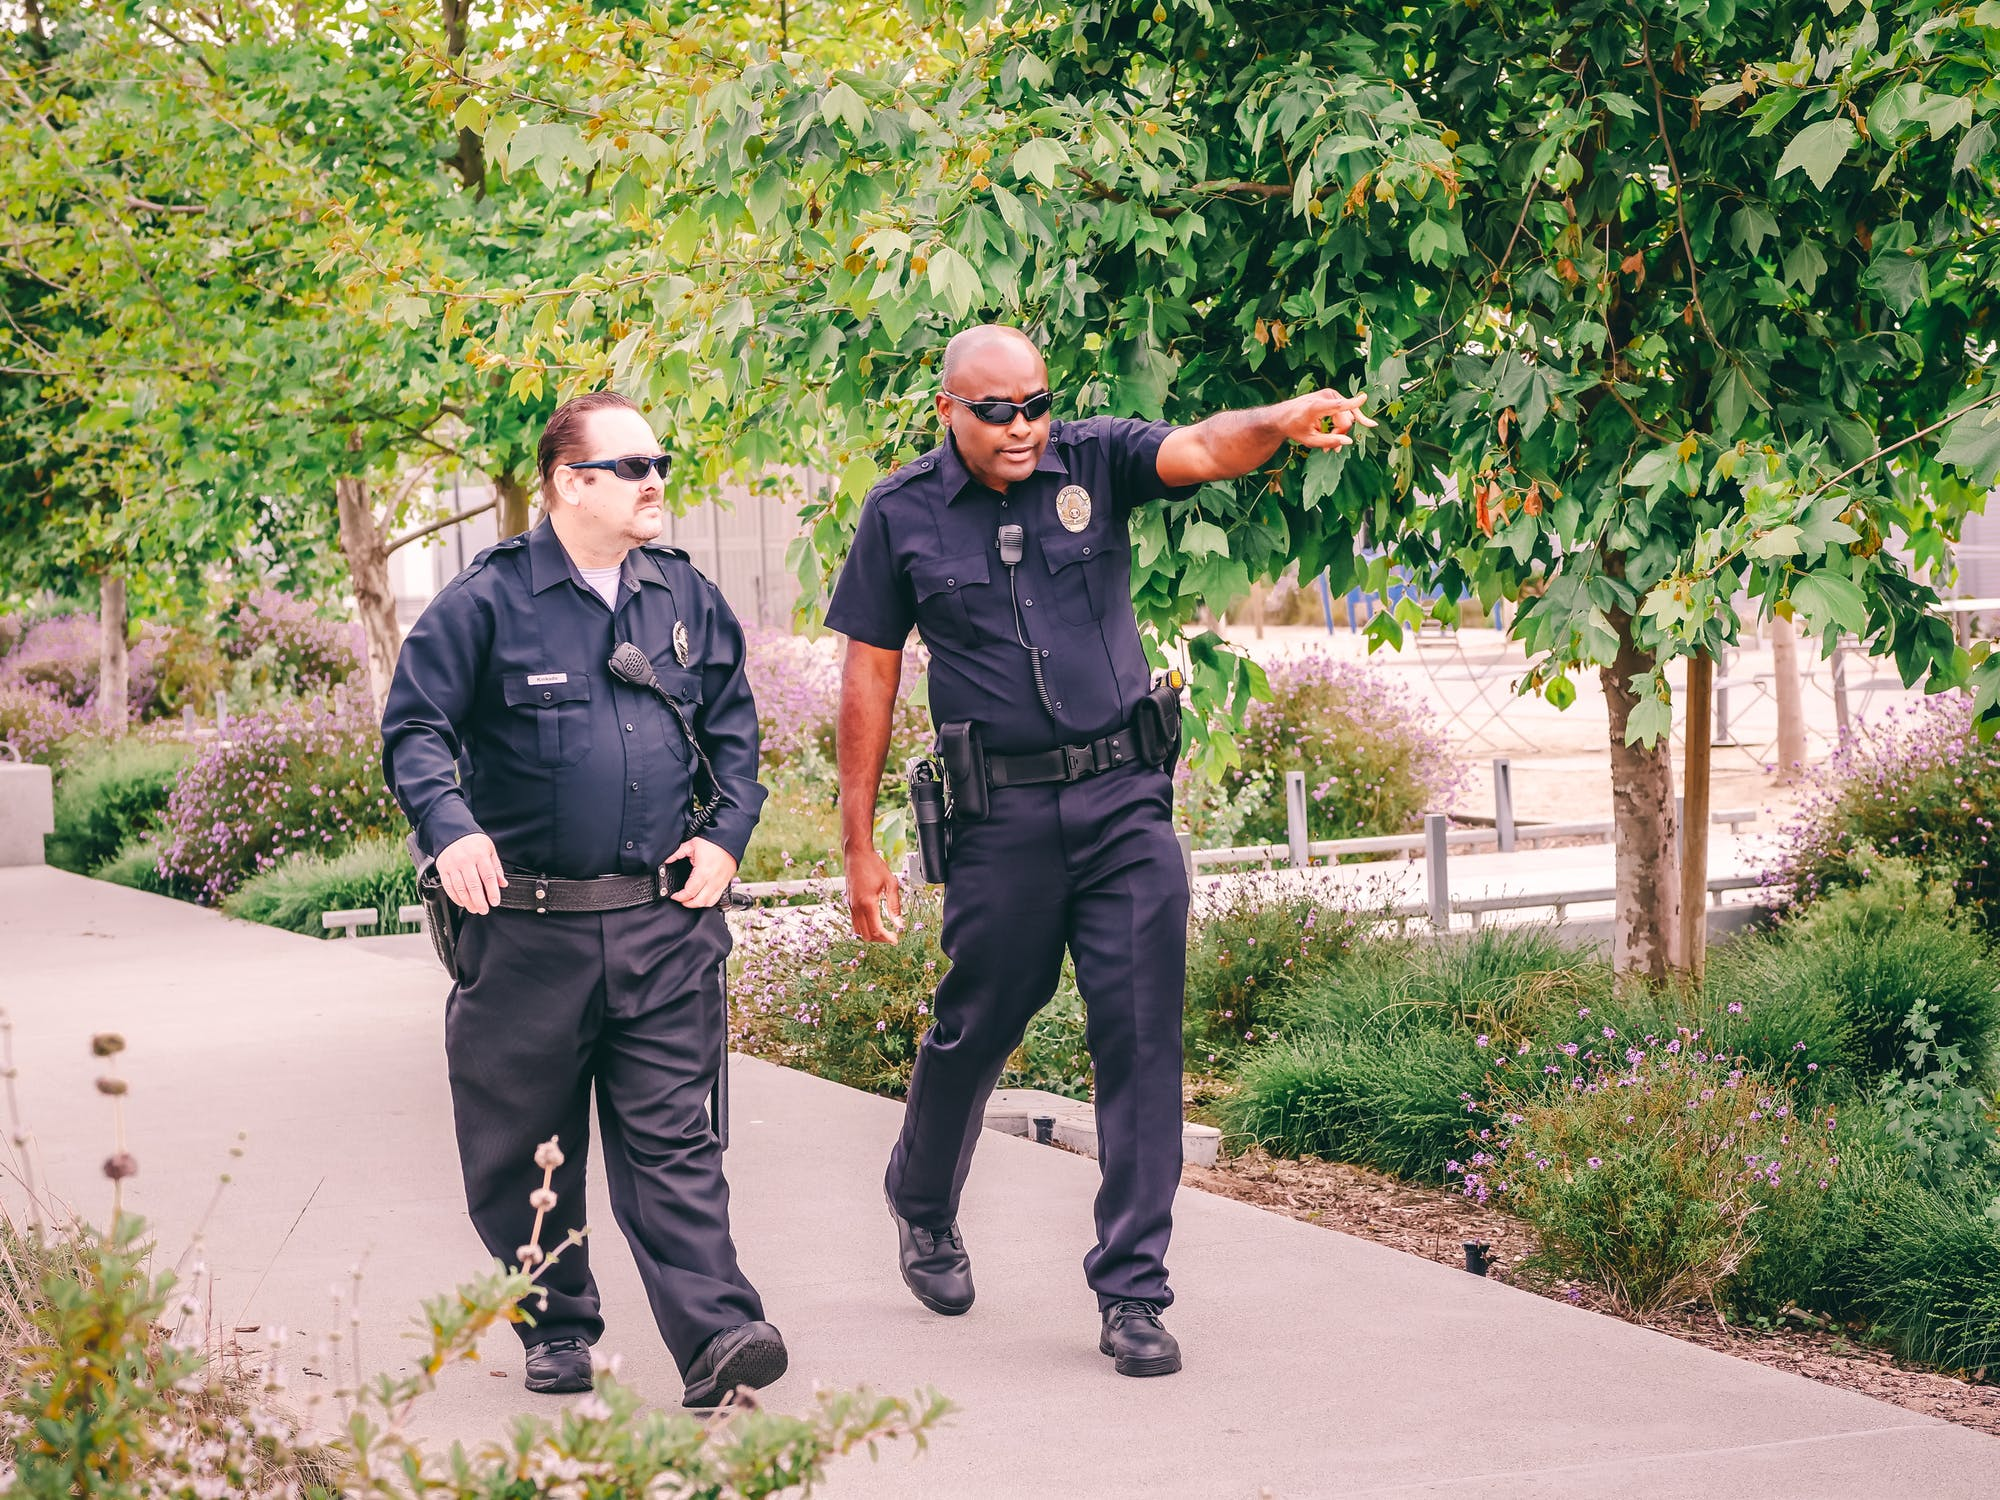 The two officers walked up to the house | Source: Pexels